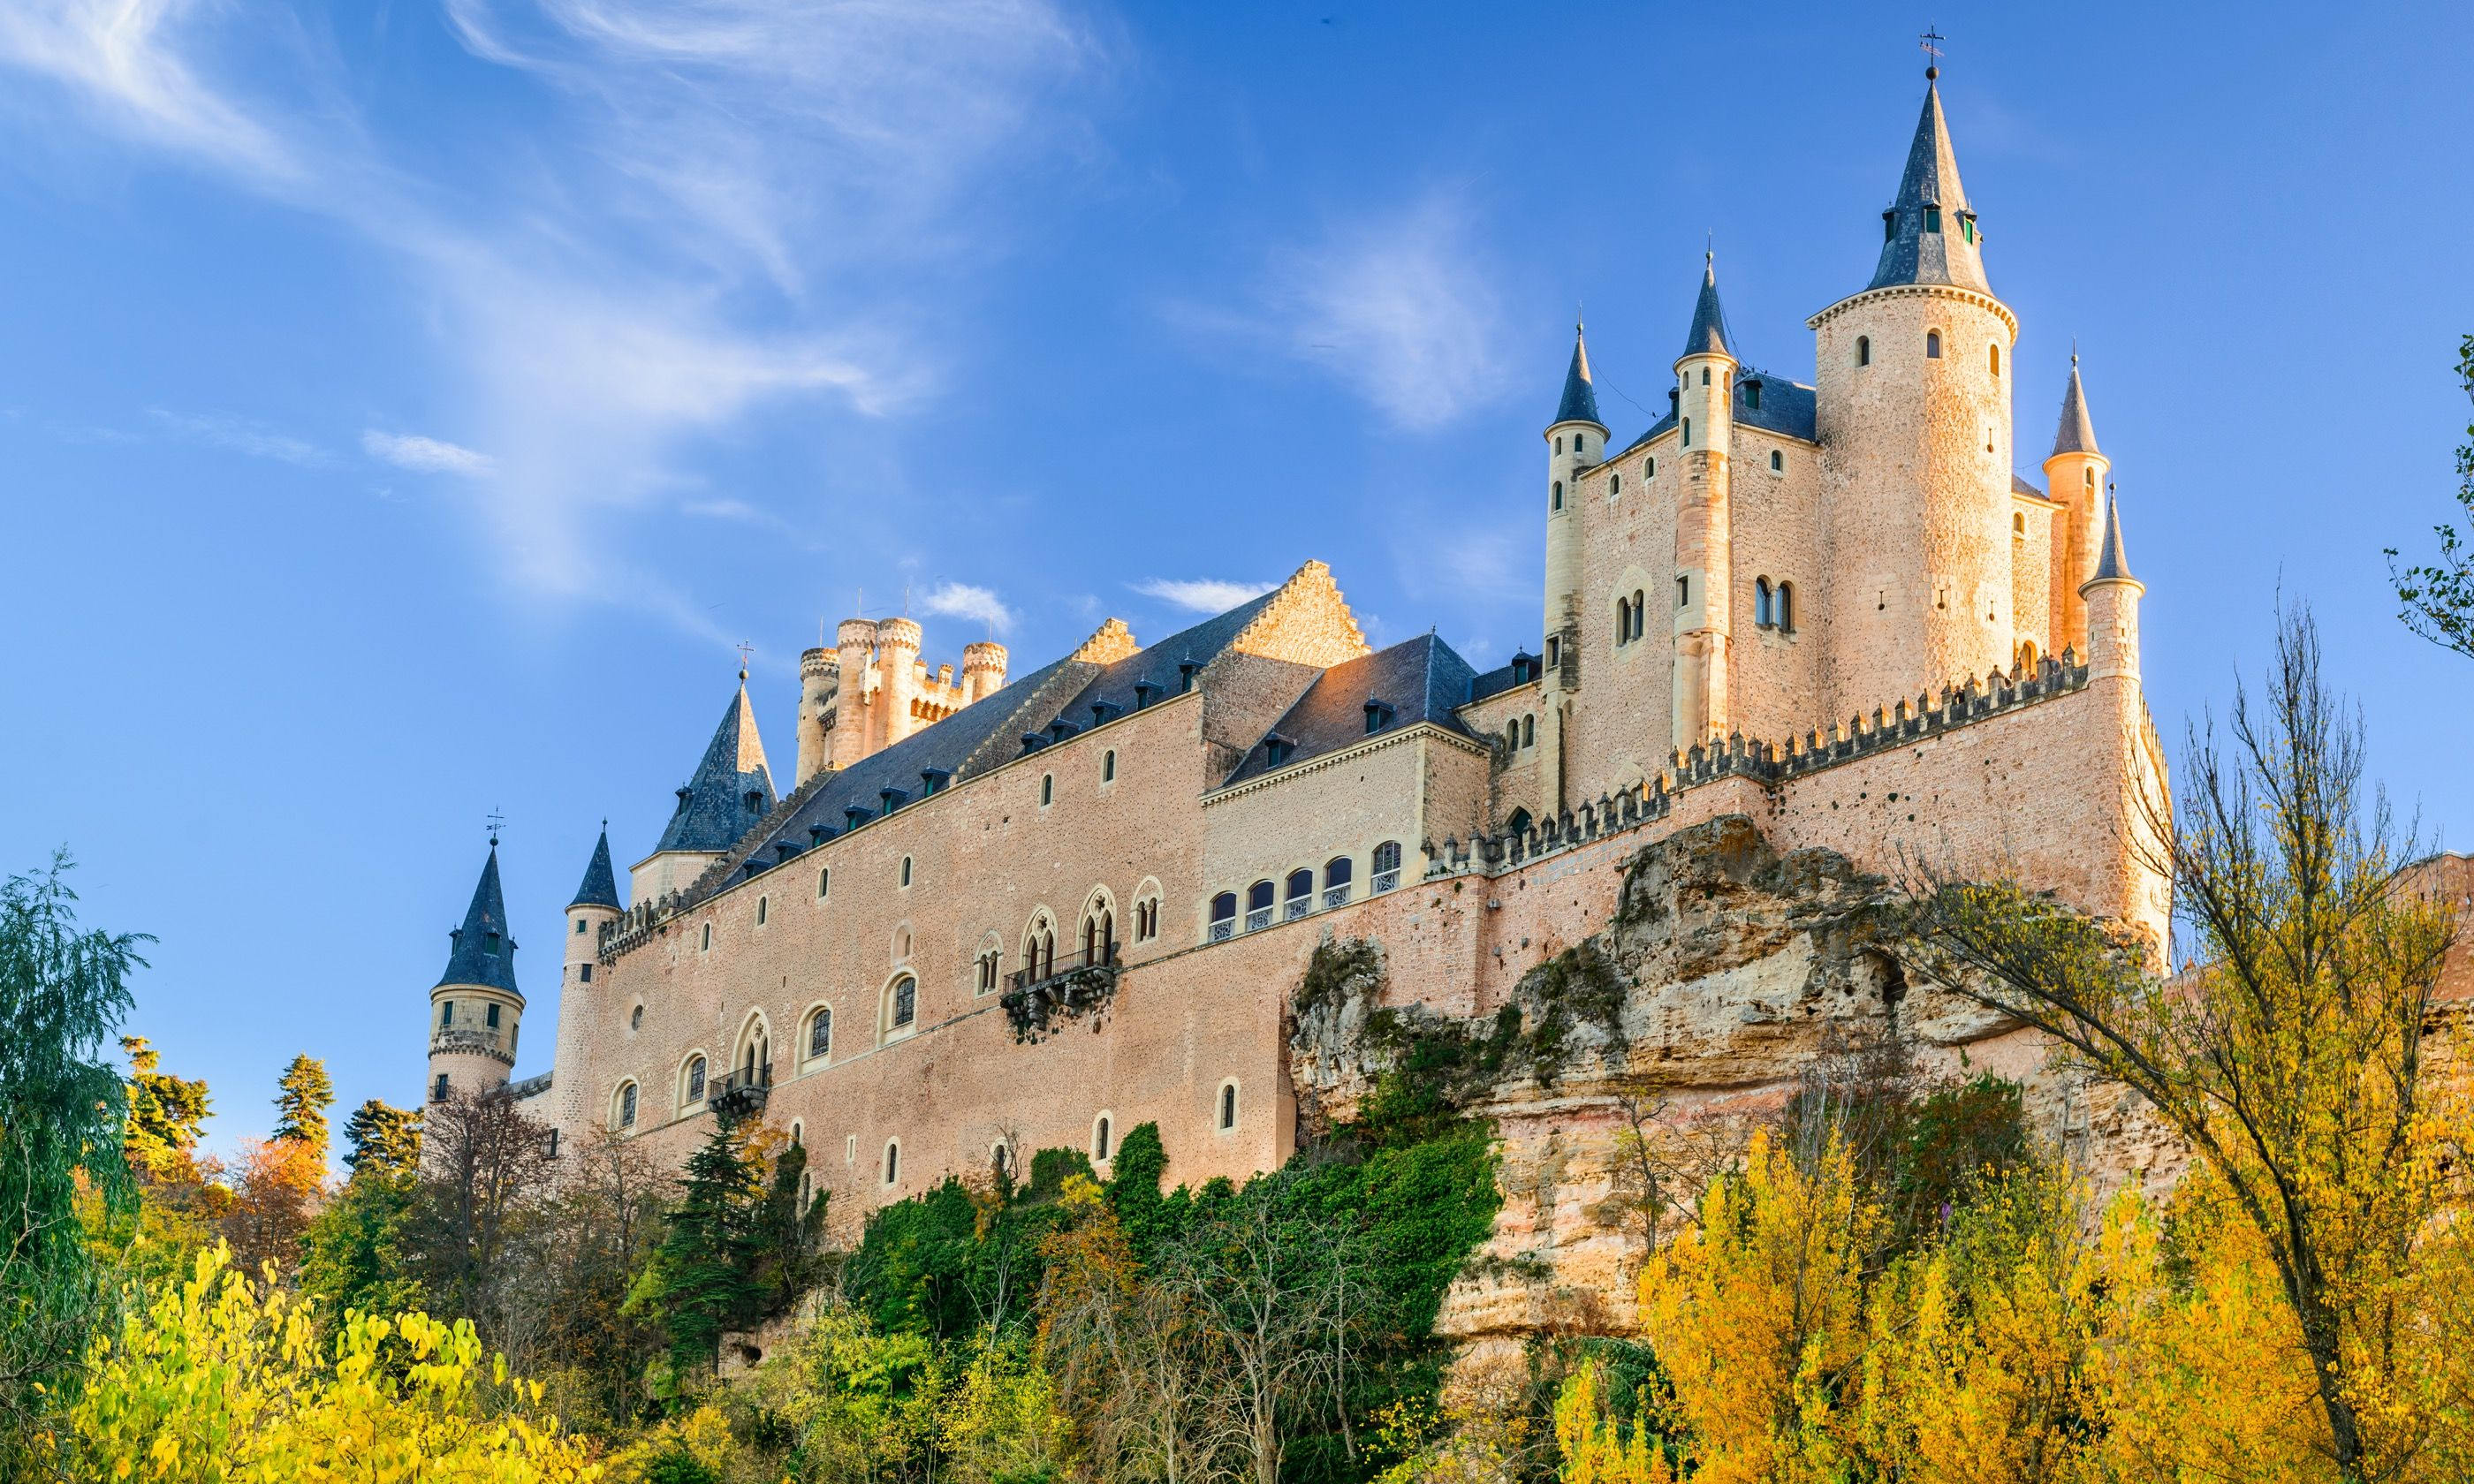 Ahoy! It's the Alcazar of Segovia (Dreamstime)